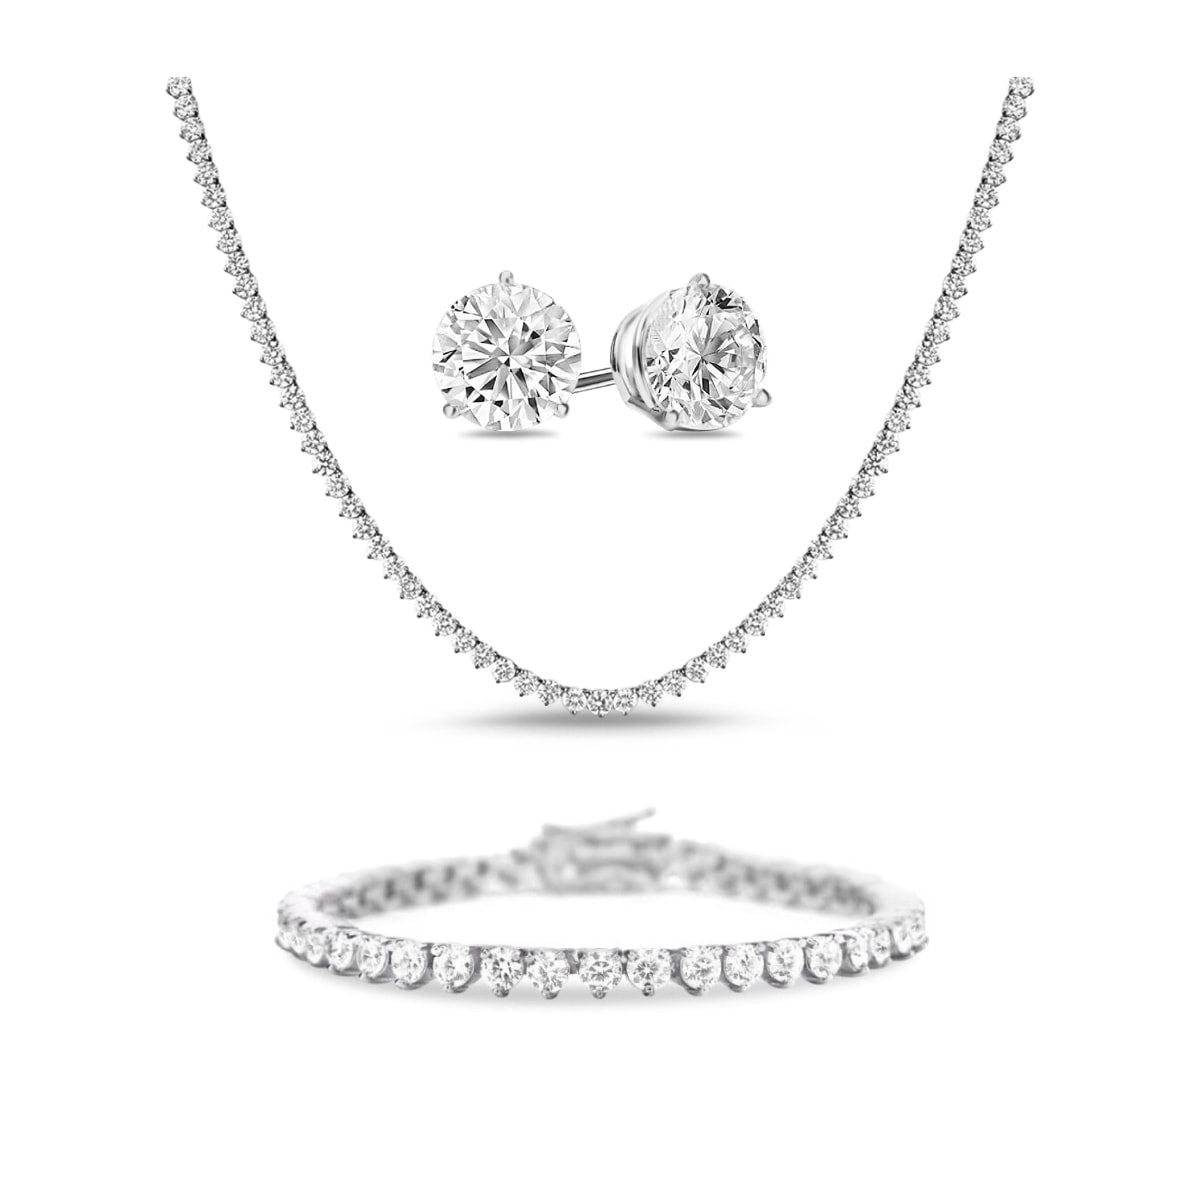 [PROMO BUNDLE] Vivere 3 Prong Necklace Bracelet Earrings Diamond Set